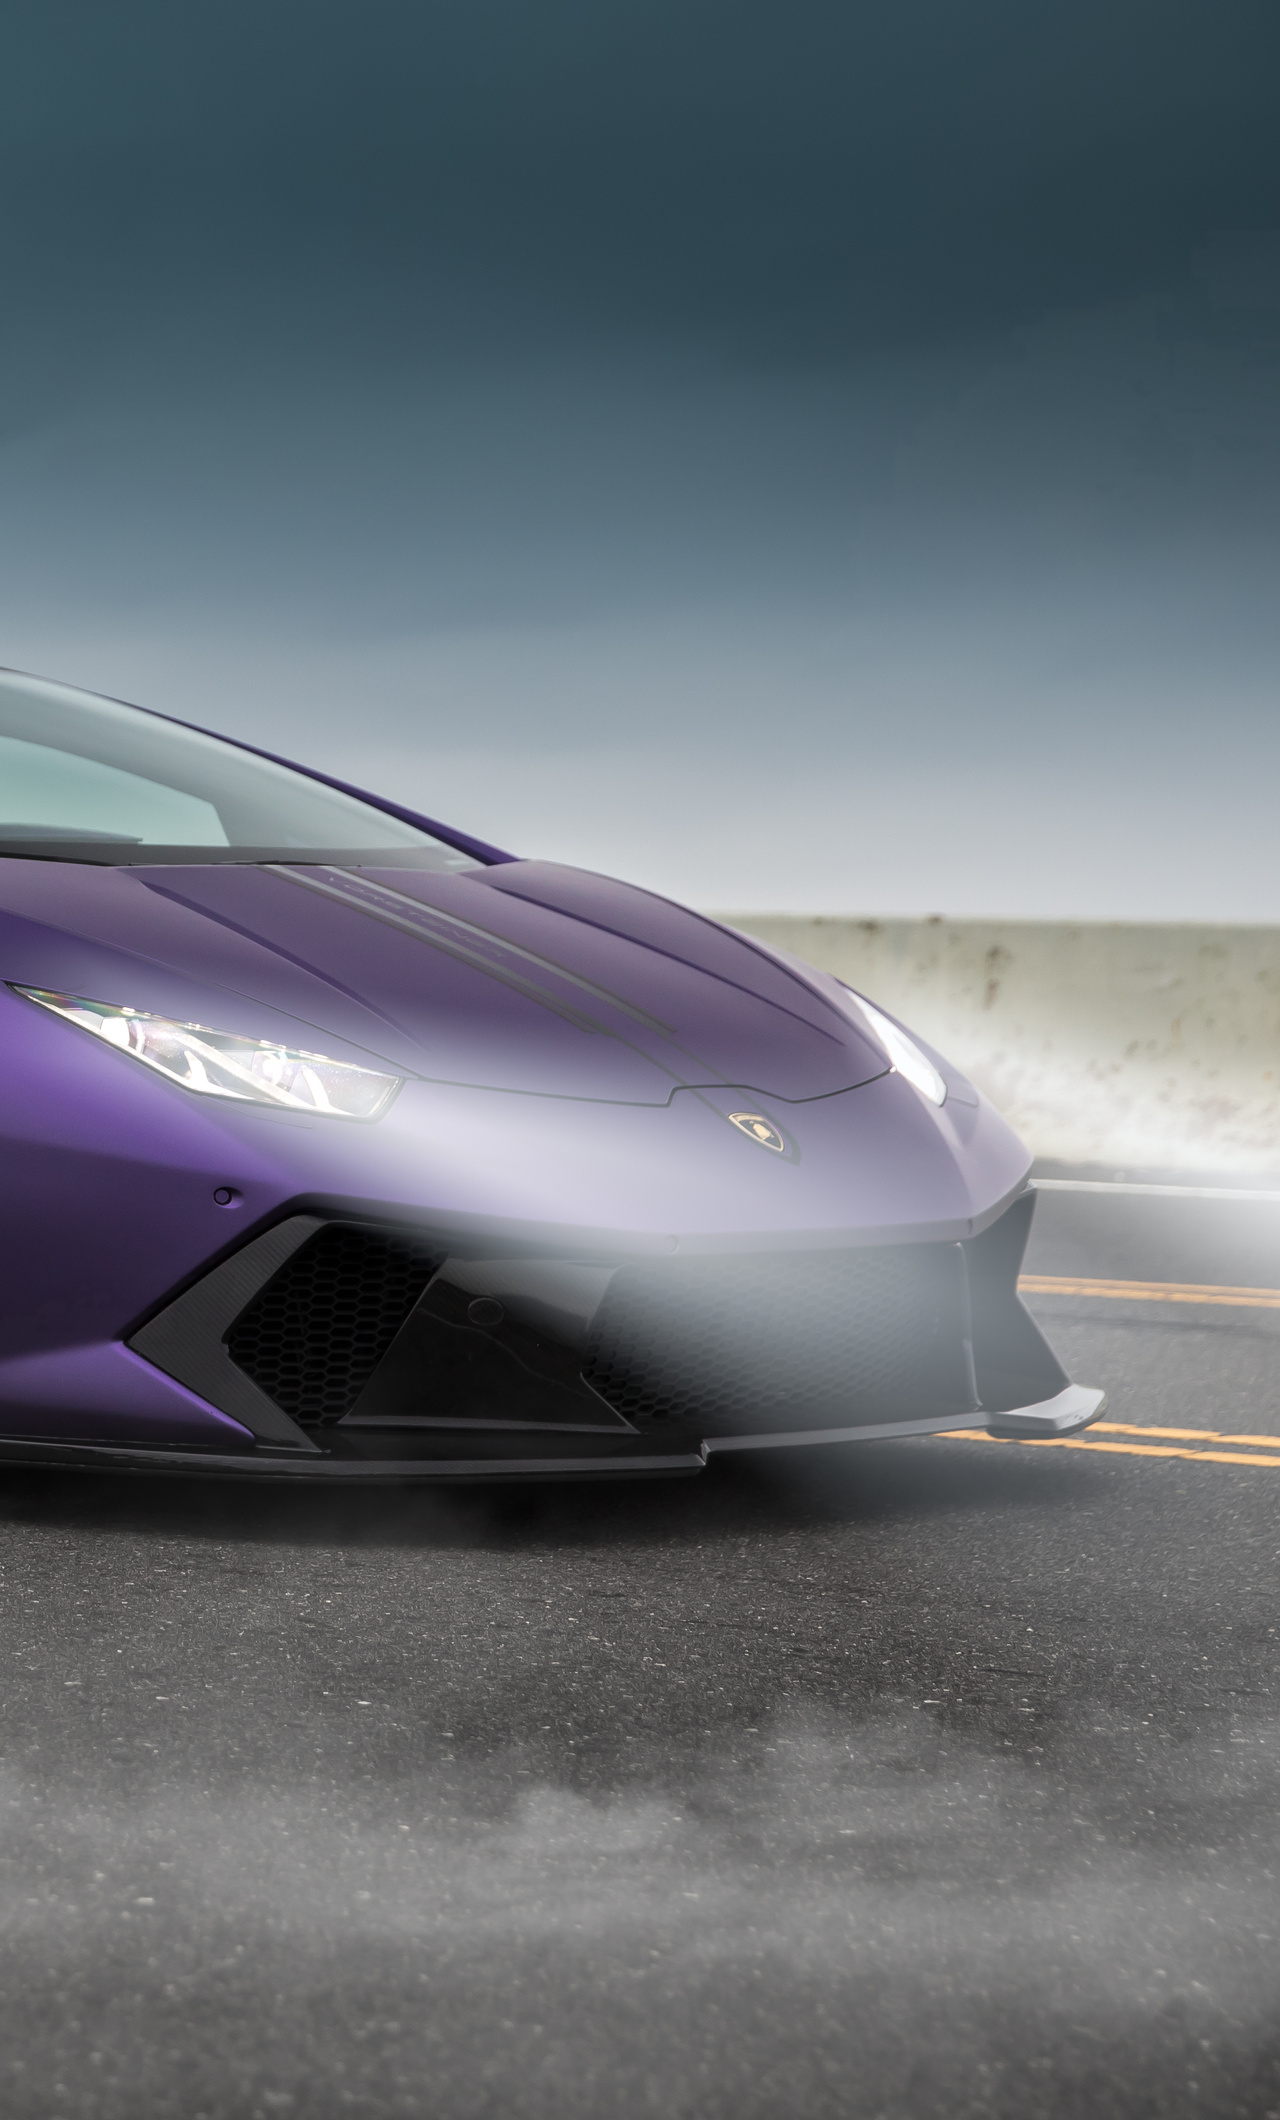 1280x2120 Purple Lamborghini 5k Iphone 6 Hd 4k Wallpapers Images